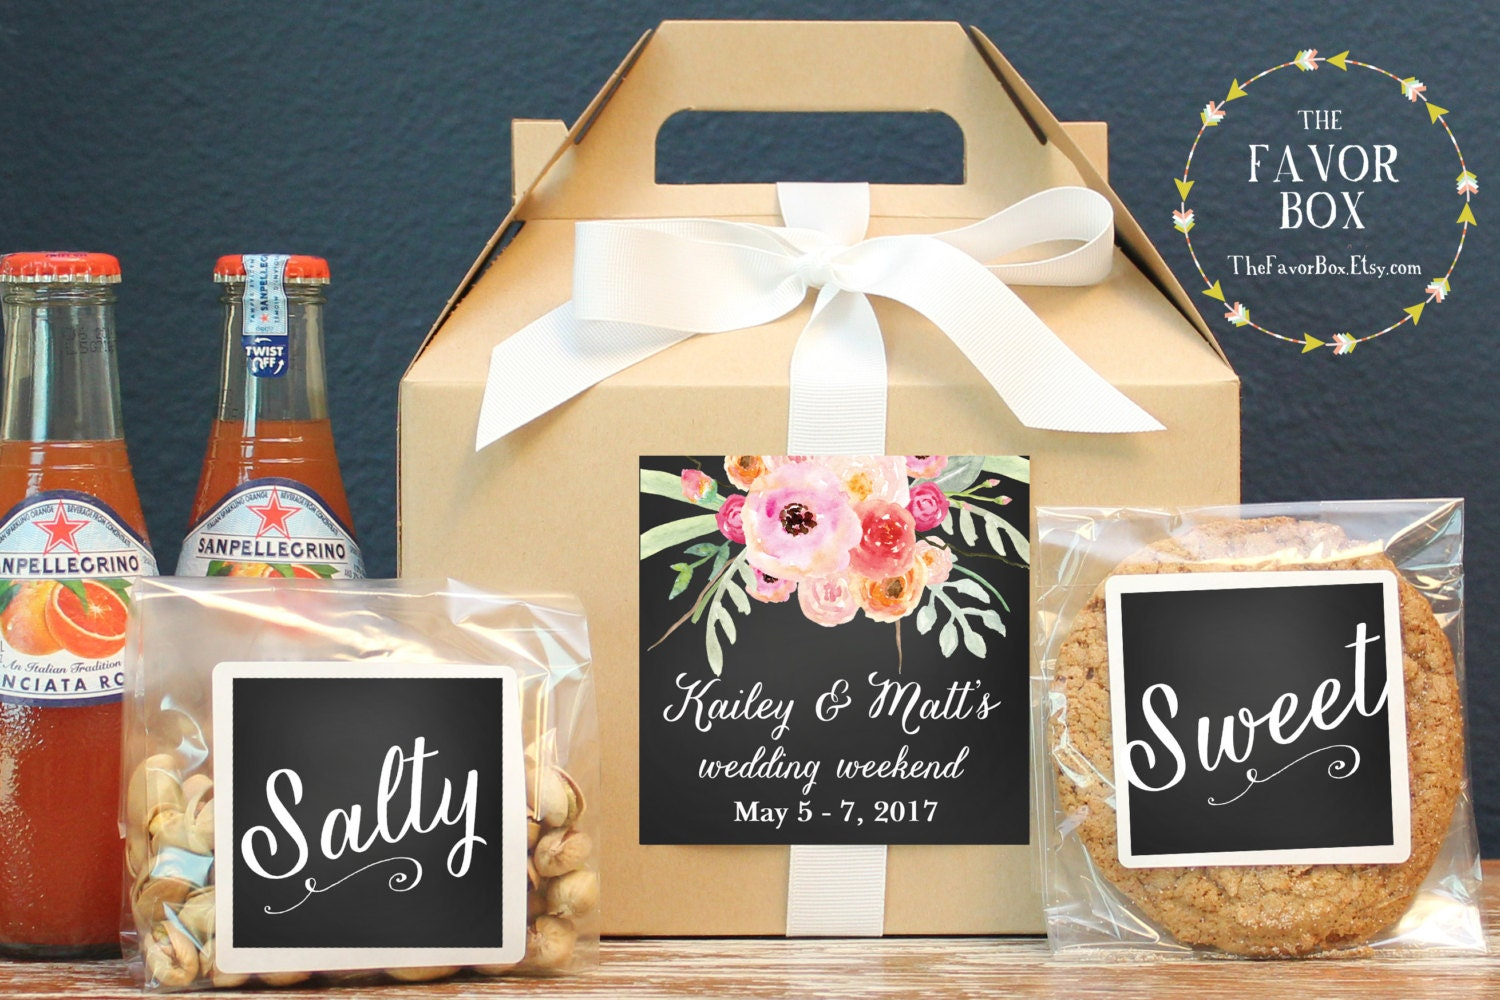 Gift Bags For Weddings For Hotel Guests: Set Of 6-Out Of Town Guest Box / Wedding Welcome Box / Wedding